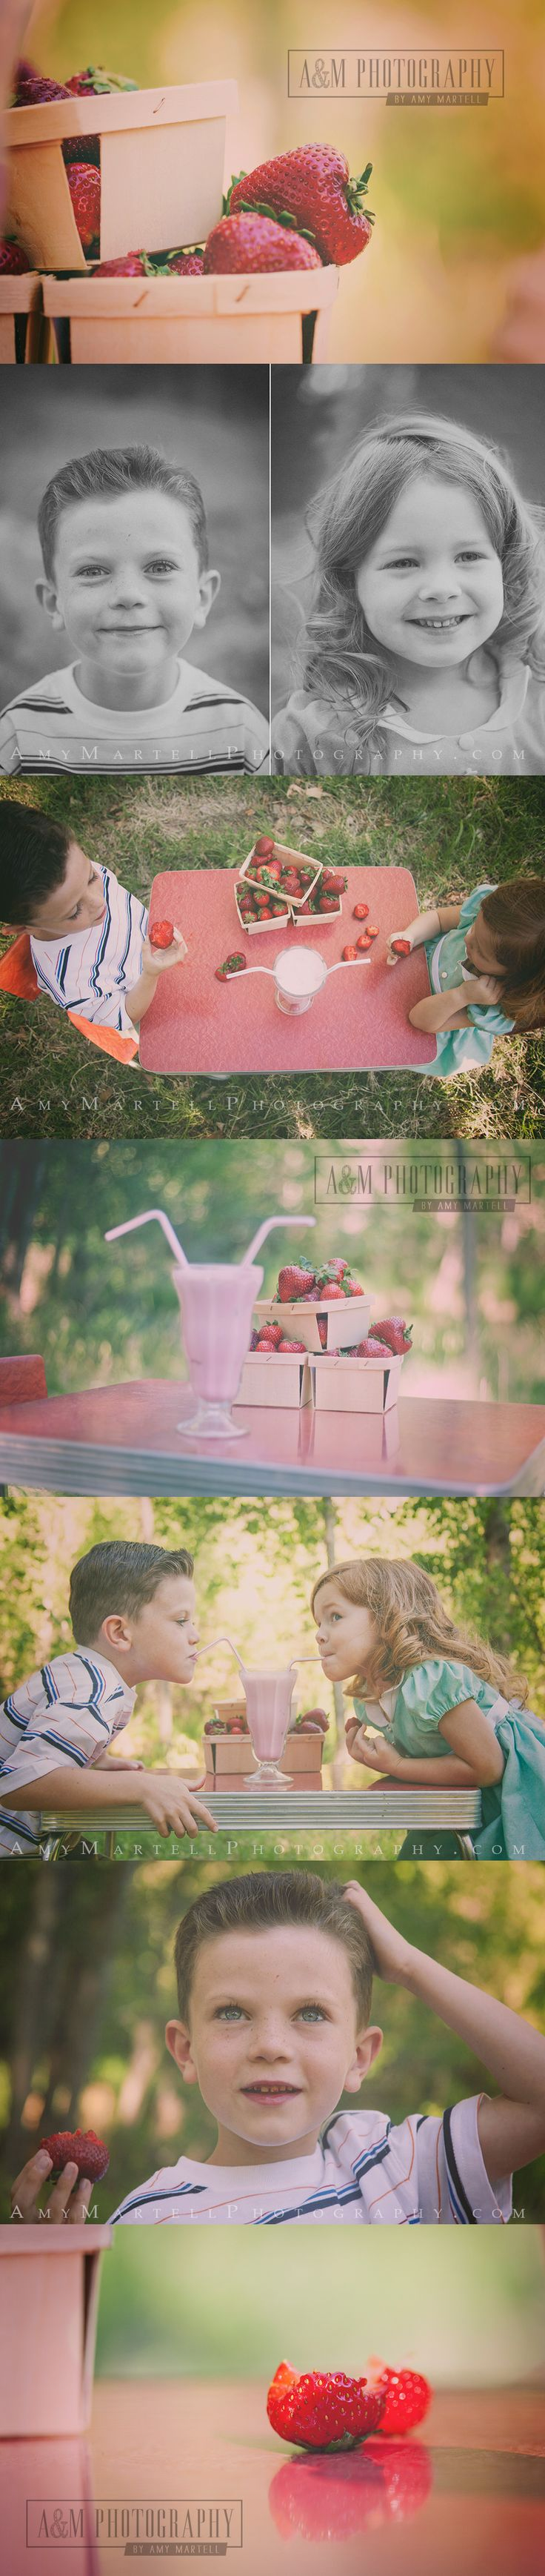 More 50's styled kids shoot on the blog!    #kids #Photography #styledsession 50's photoshoot